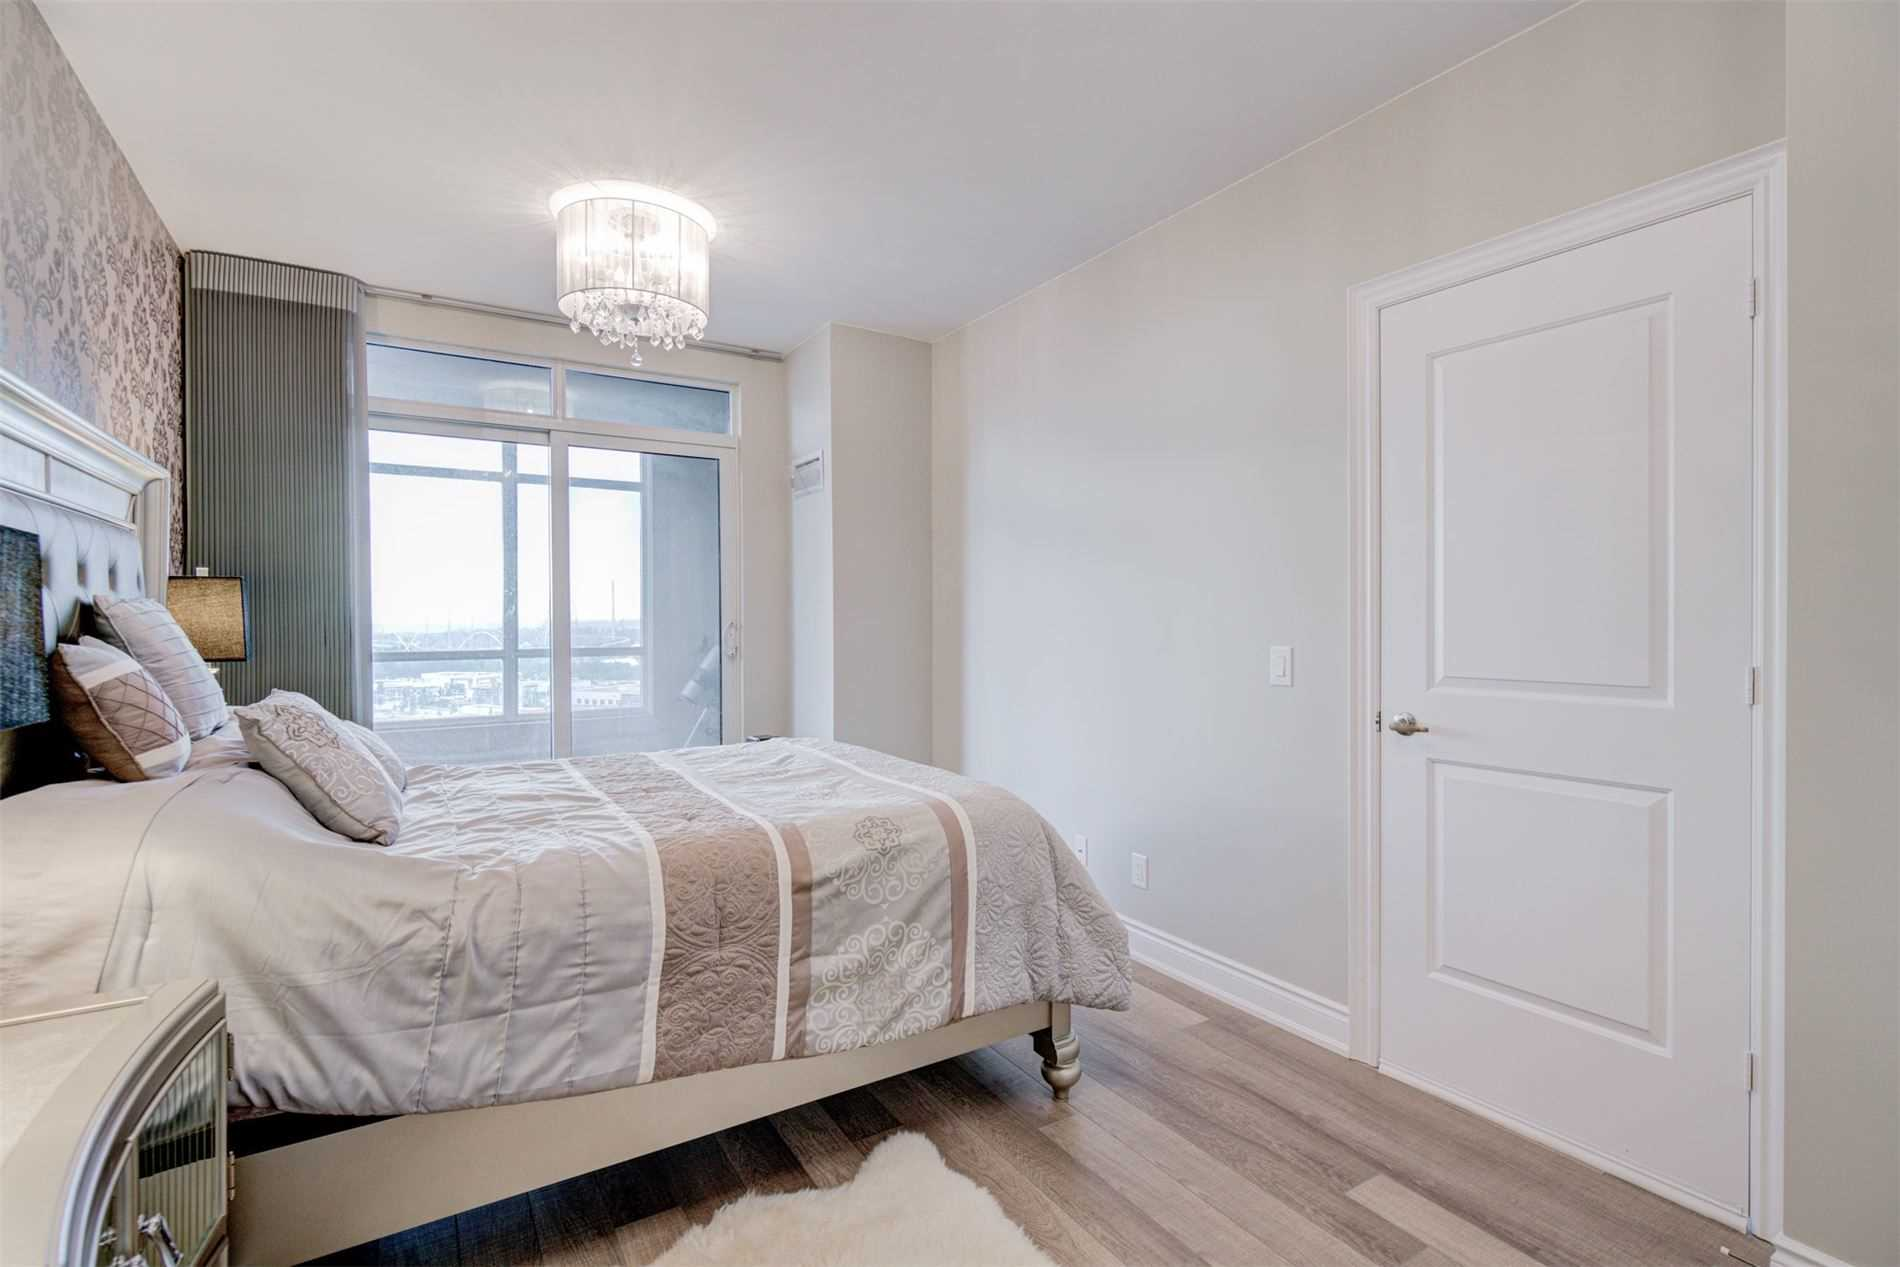 Image 16 of 39 showing inside of 2 Bedroom Condo Apt Apartment for Sale at 9255 Jane St Unit# 1603, Vaughan L6A0K1